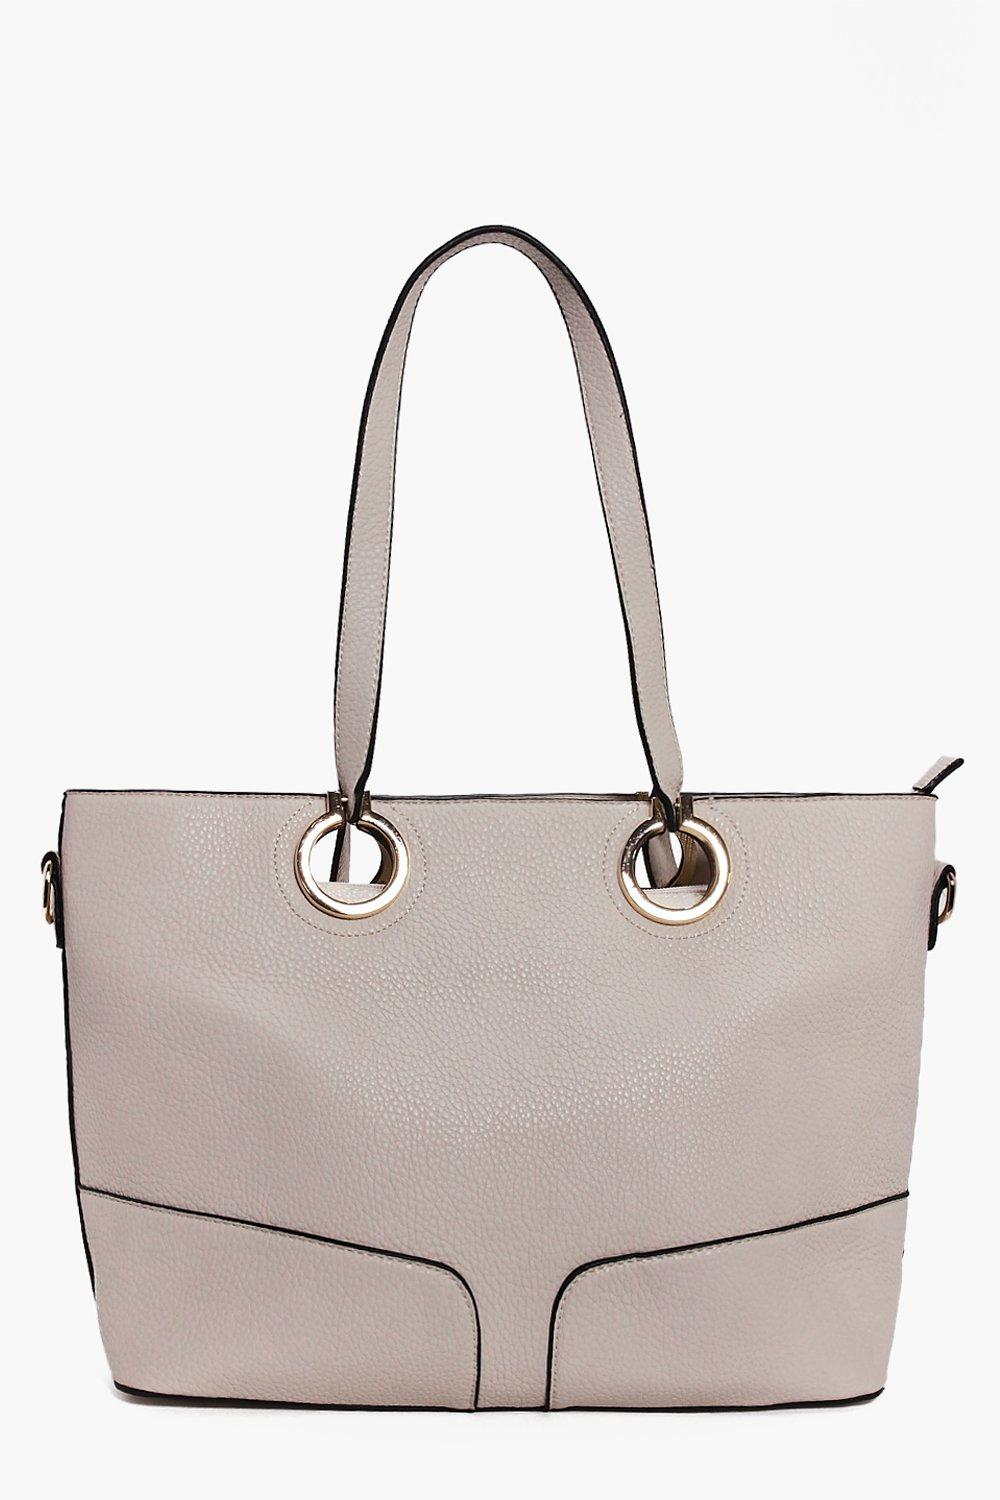 Metal Ring Detail Large Day Bag cream